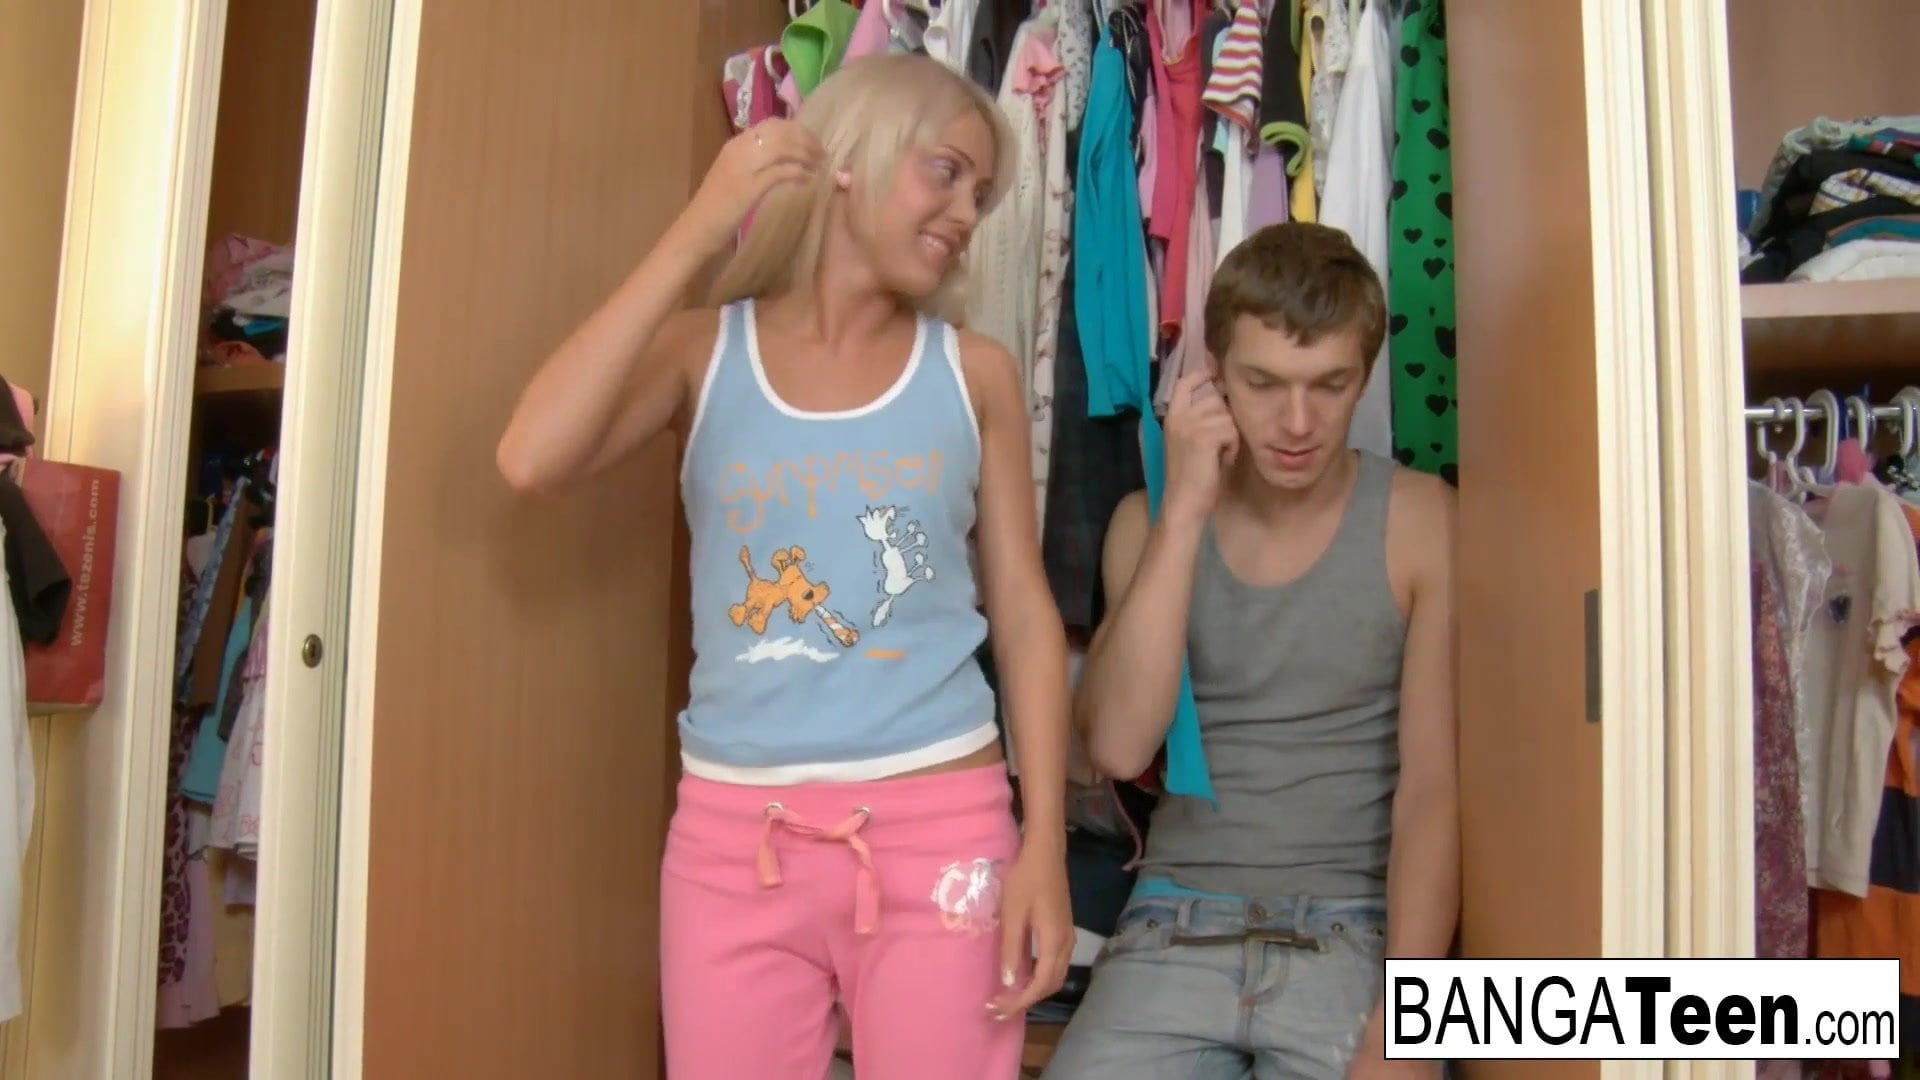 .Pretty blonde teen wants to get down and dirty.